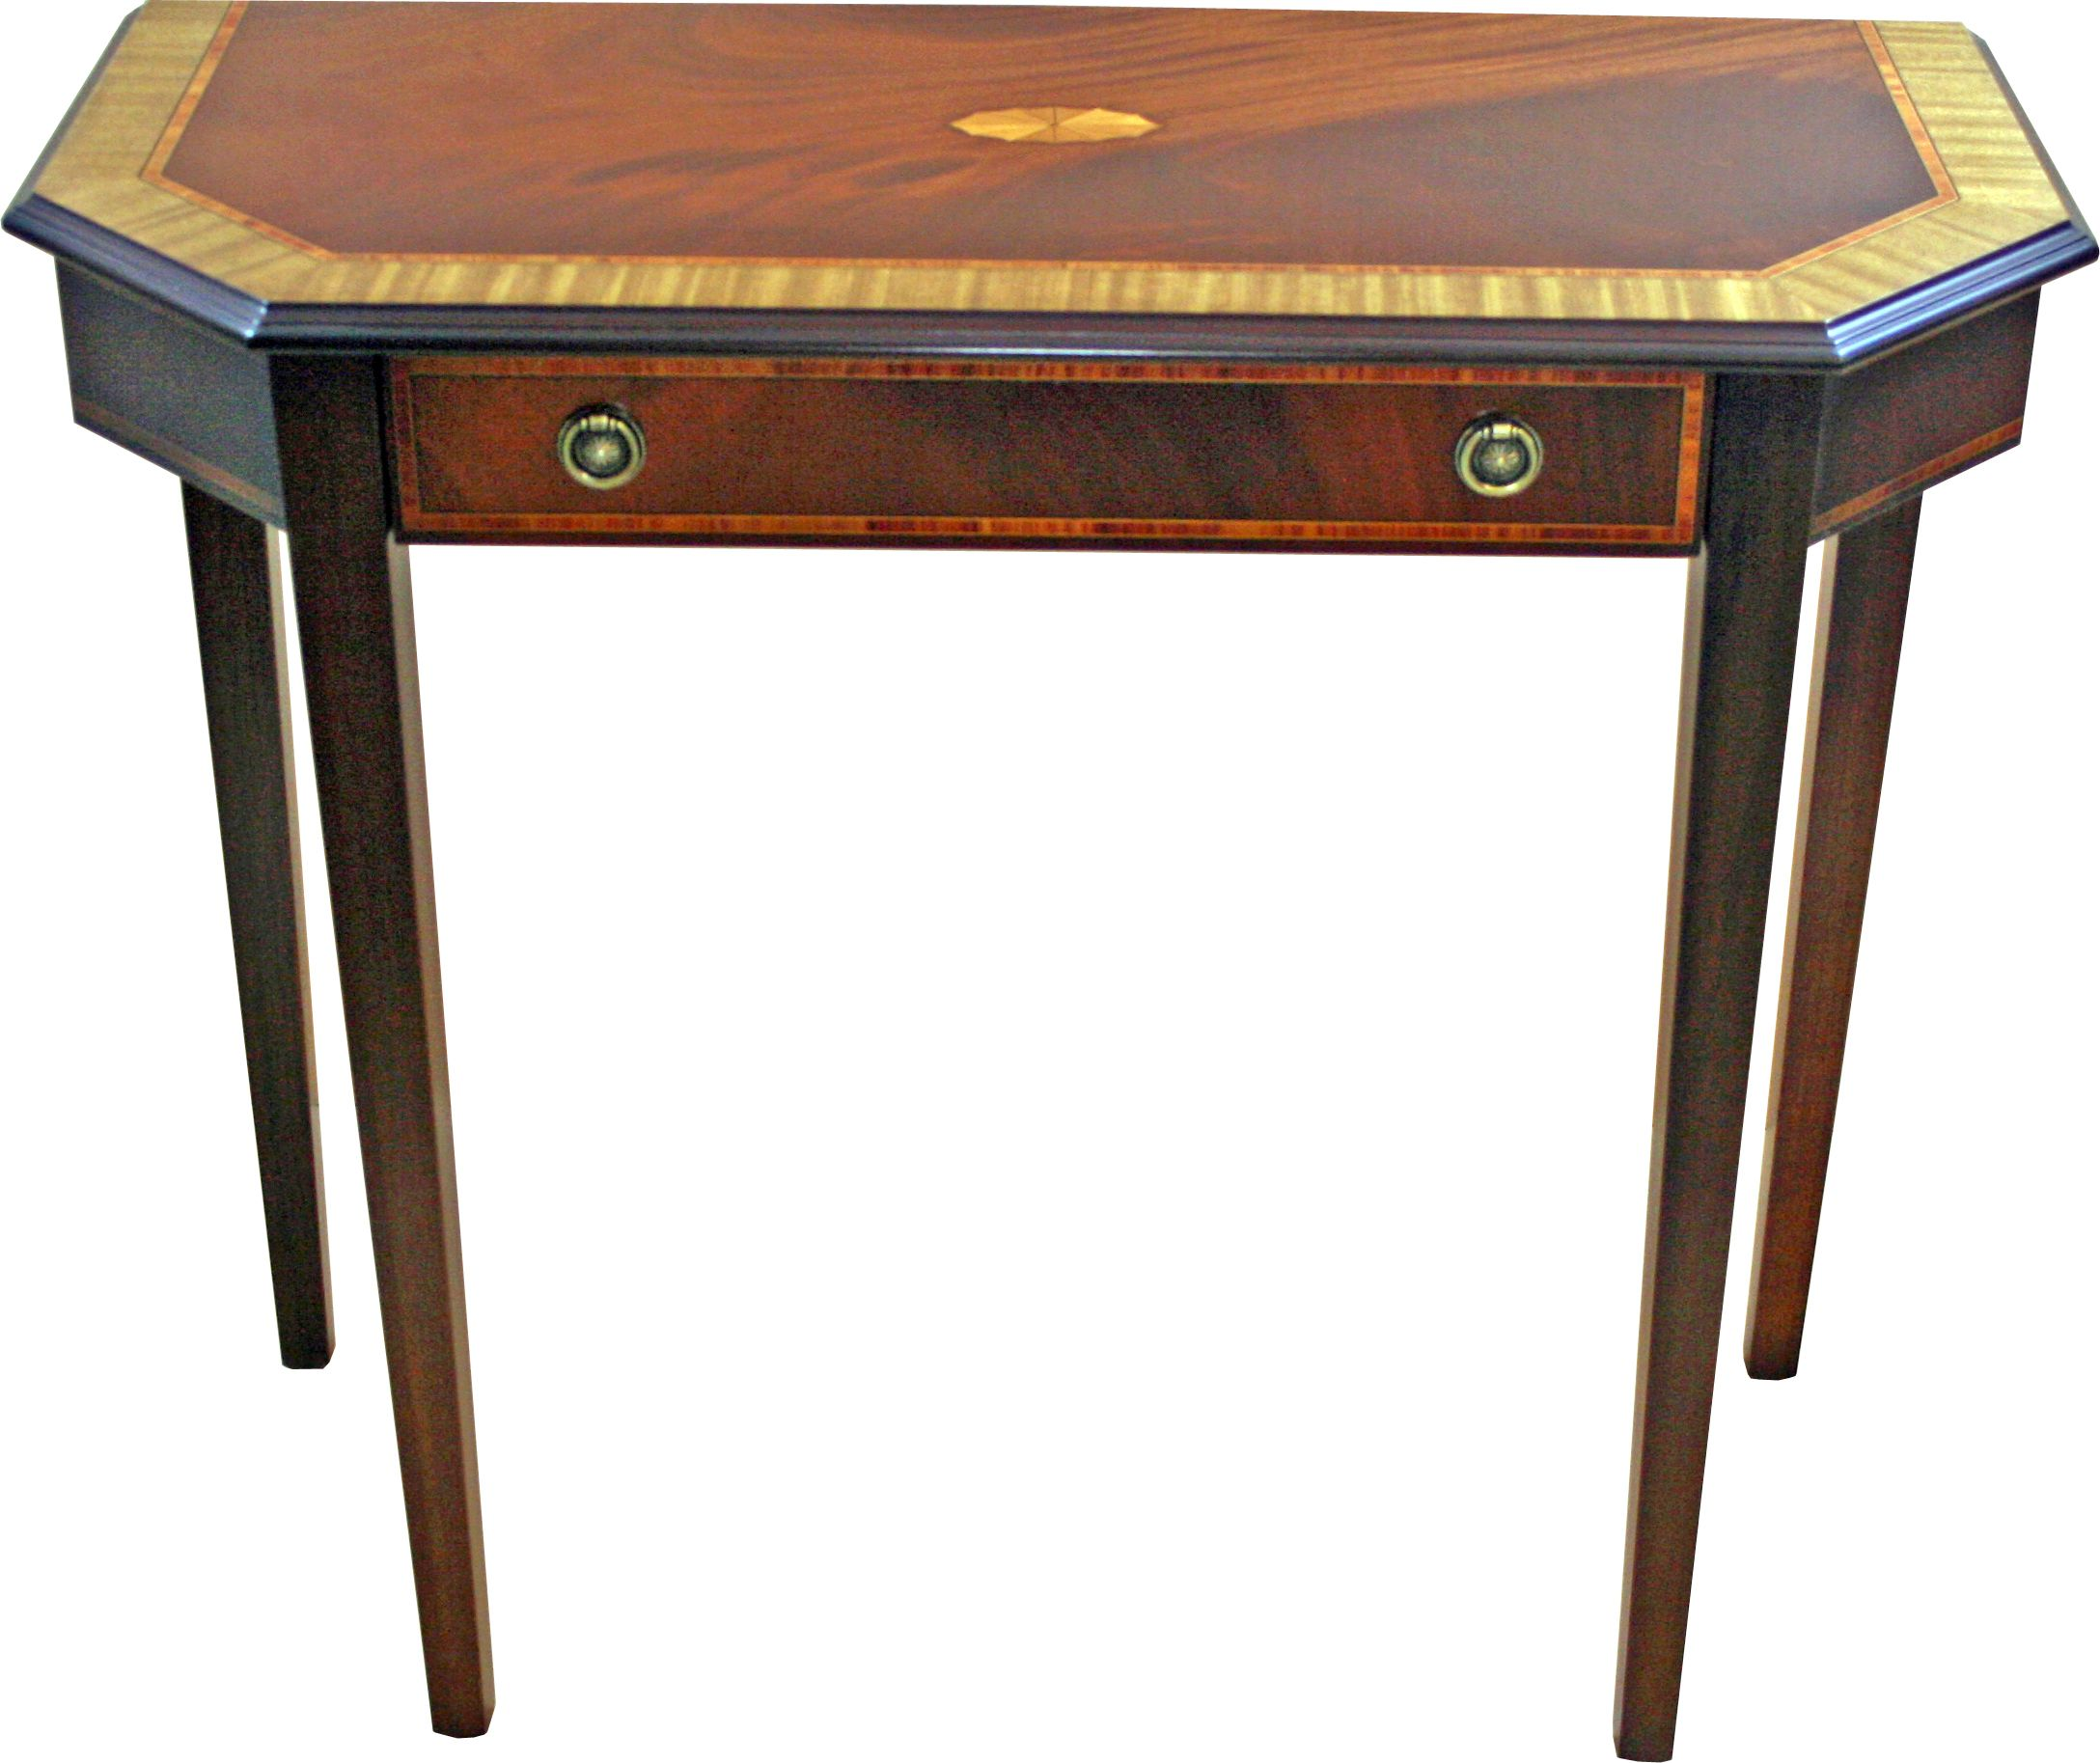 Mahogany Hall Table With Fan Marquetry And Tulip Inlays This Stunning Table Also Features A Beautiful Satinwood Furniture English Furniture Bespoke Furniture